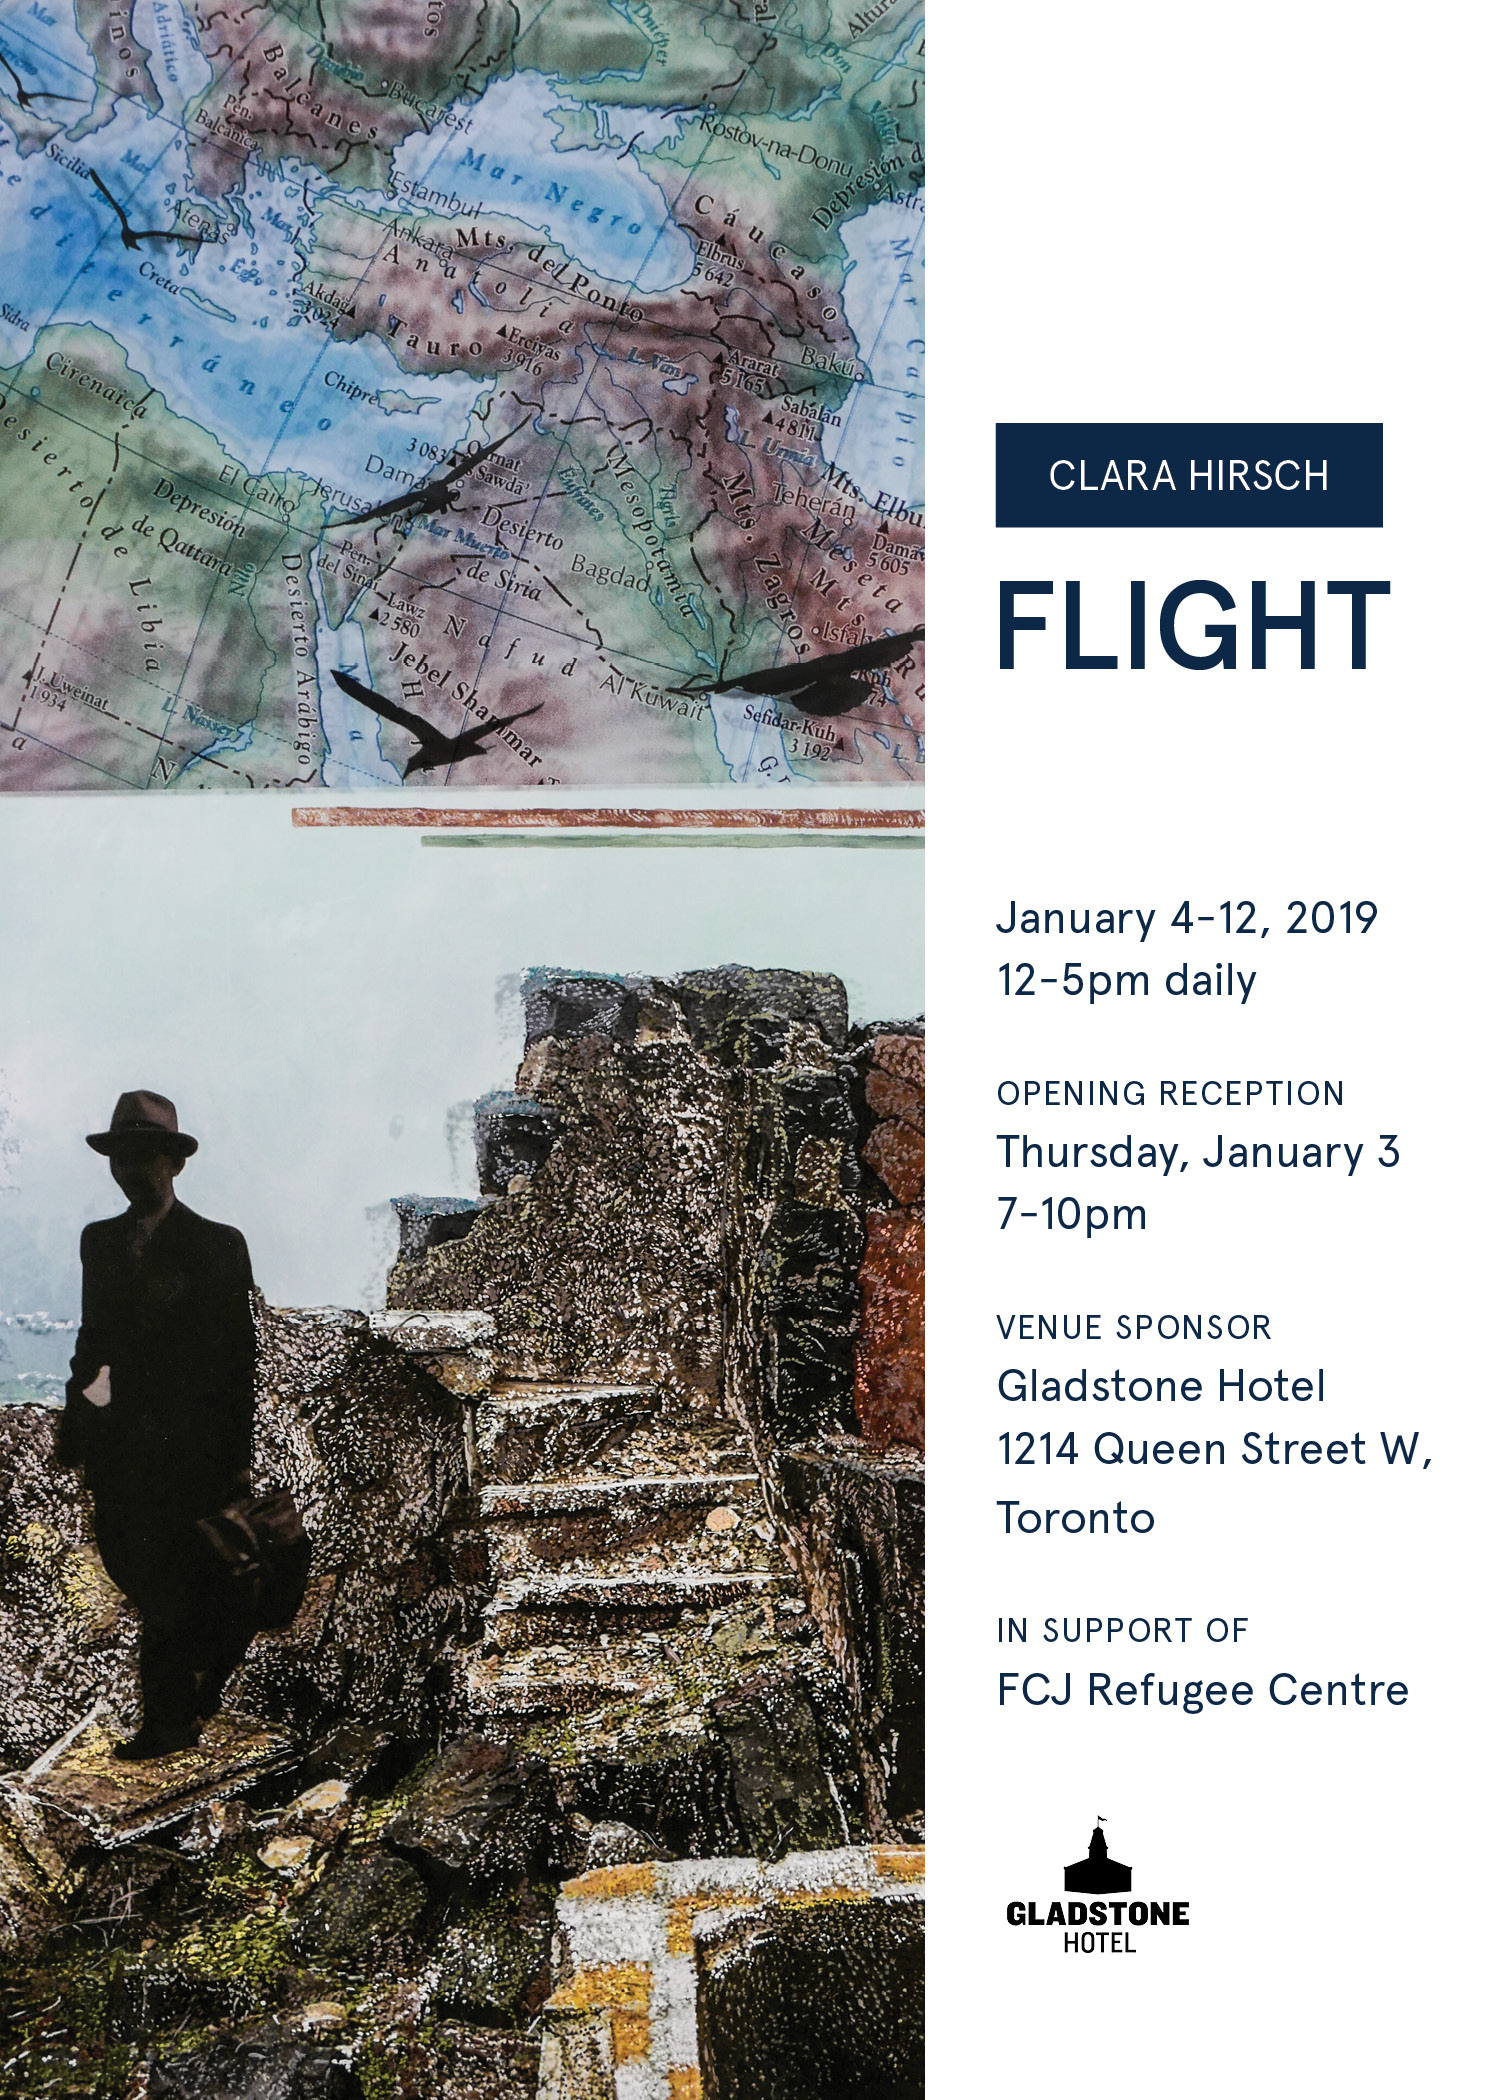 ClaraHirsch_Flight_ShowFlyer_Final_20181118.jpg